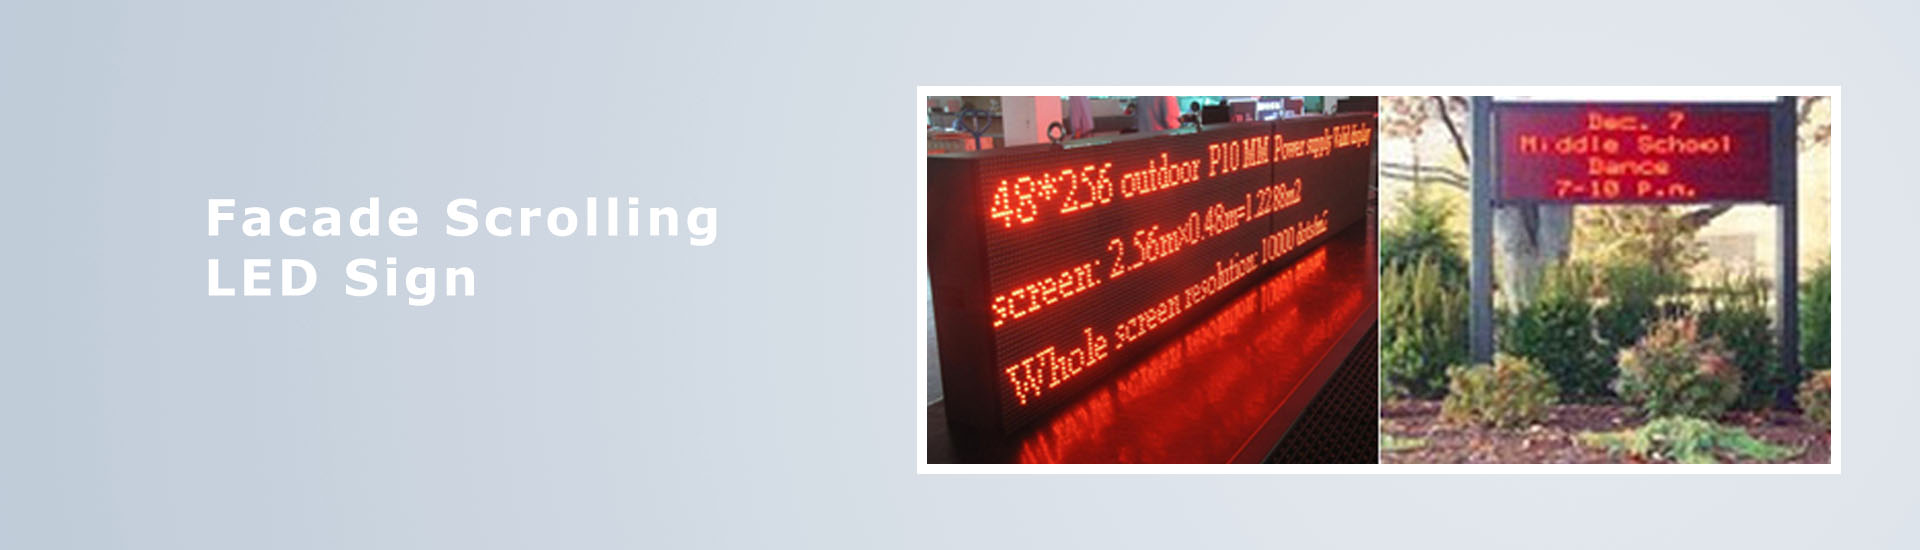 digital-LED-Facade-Scrolling